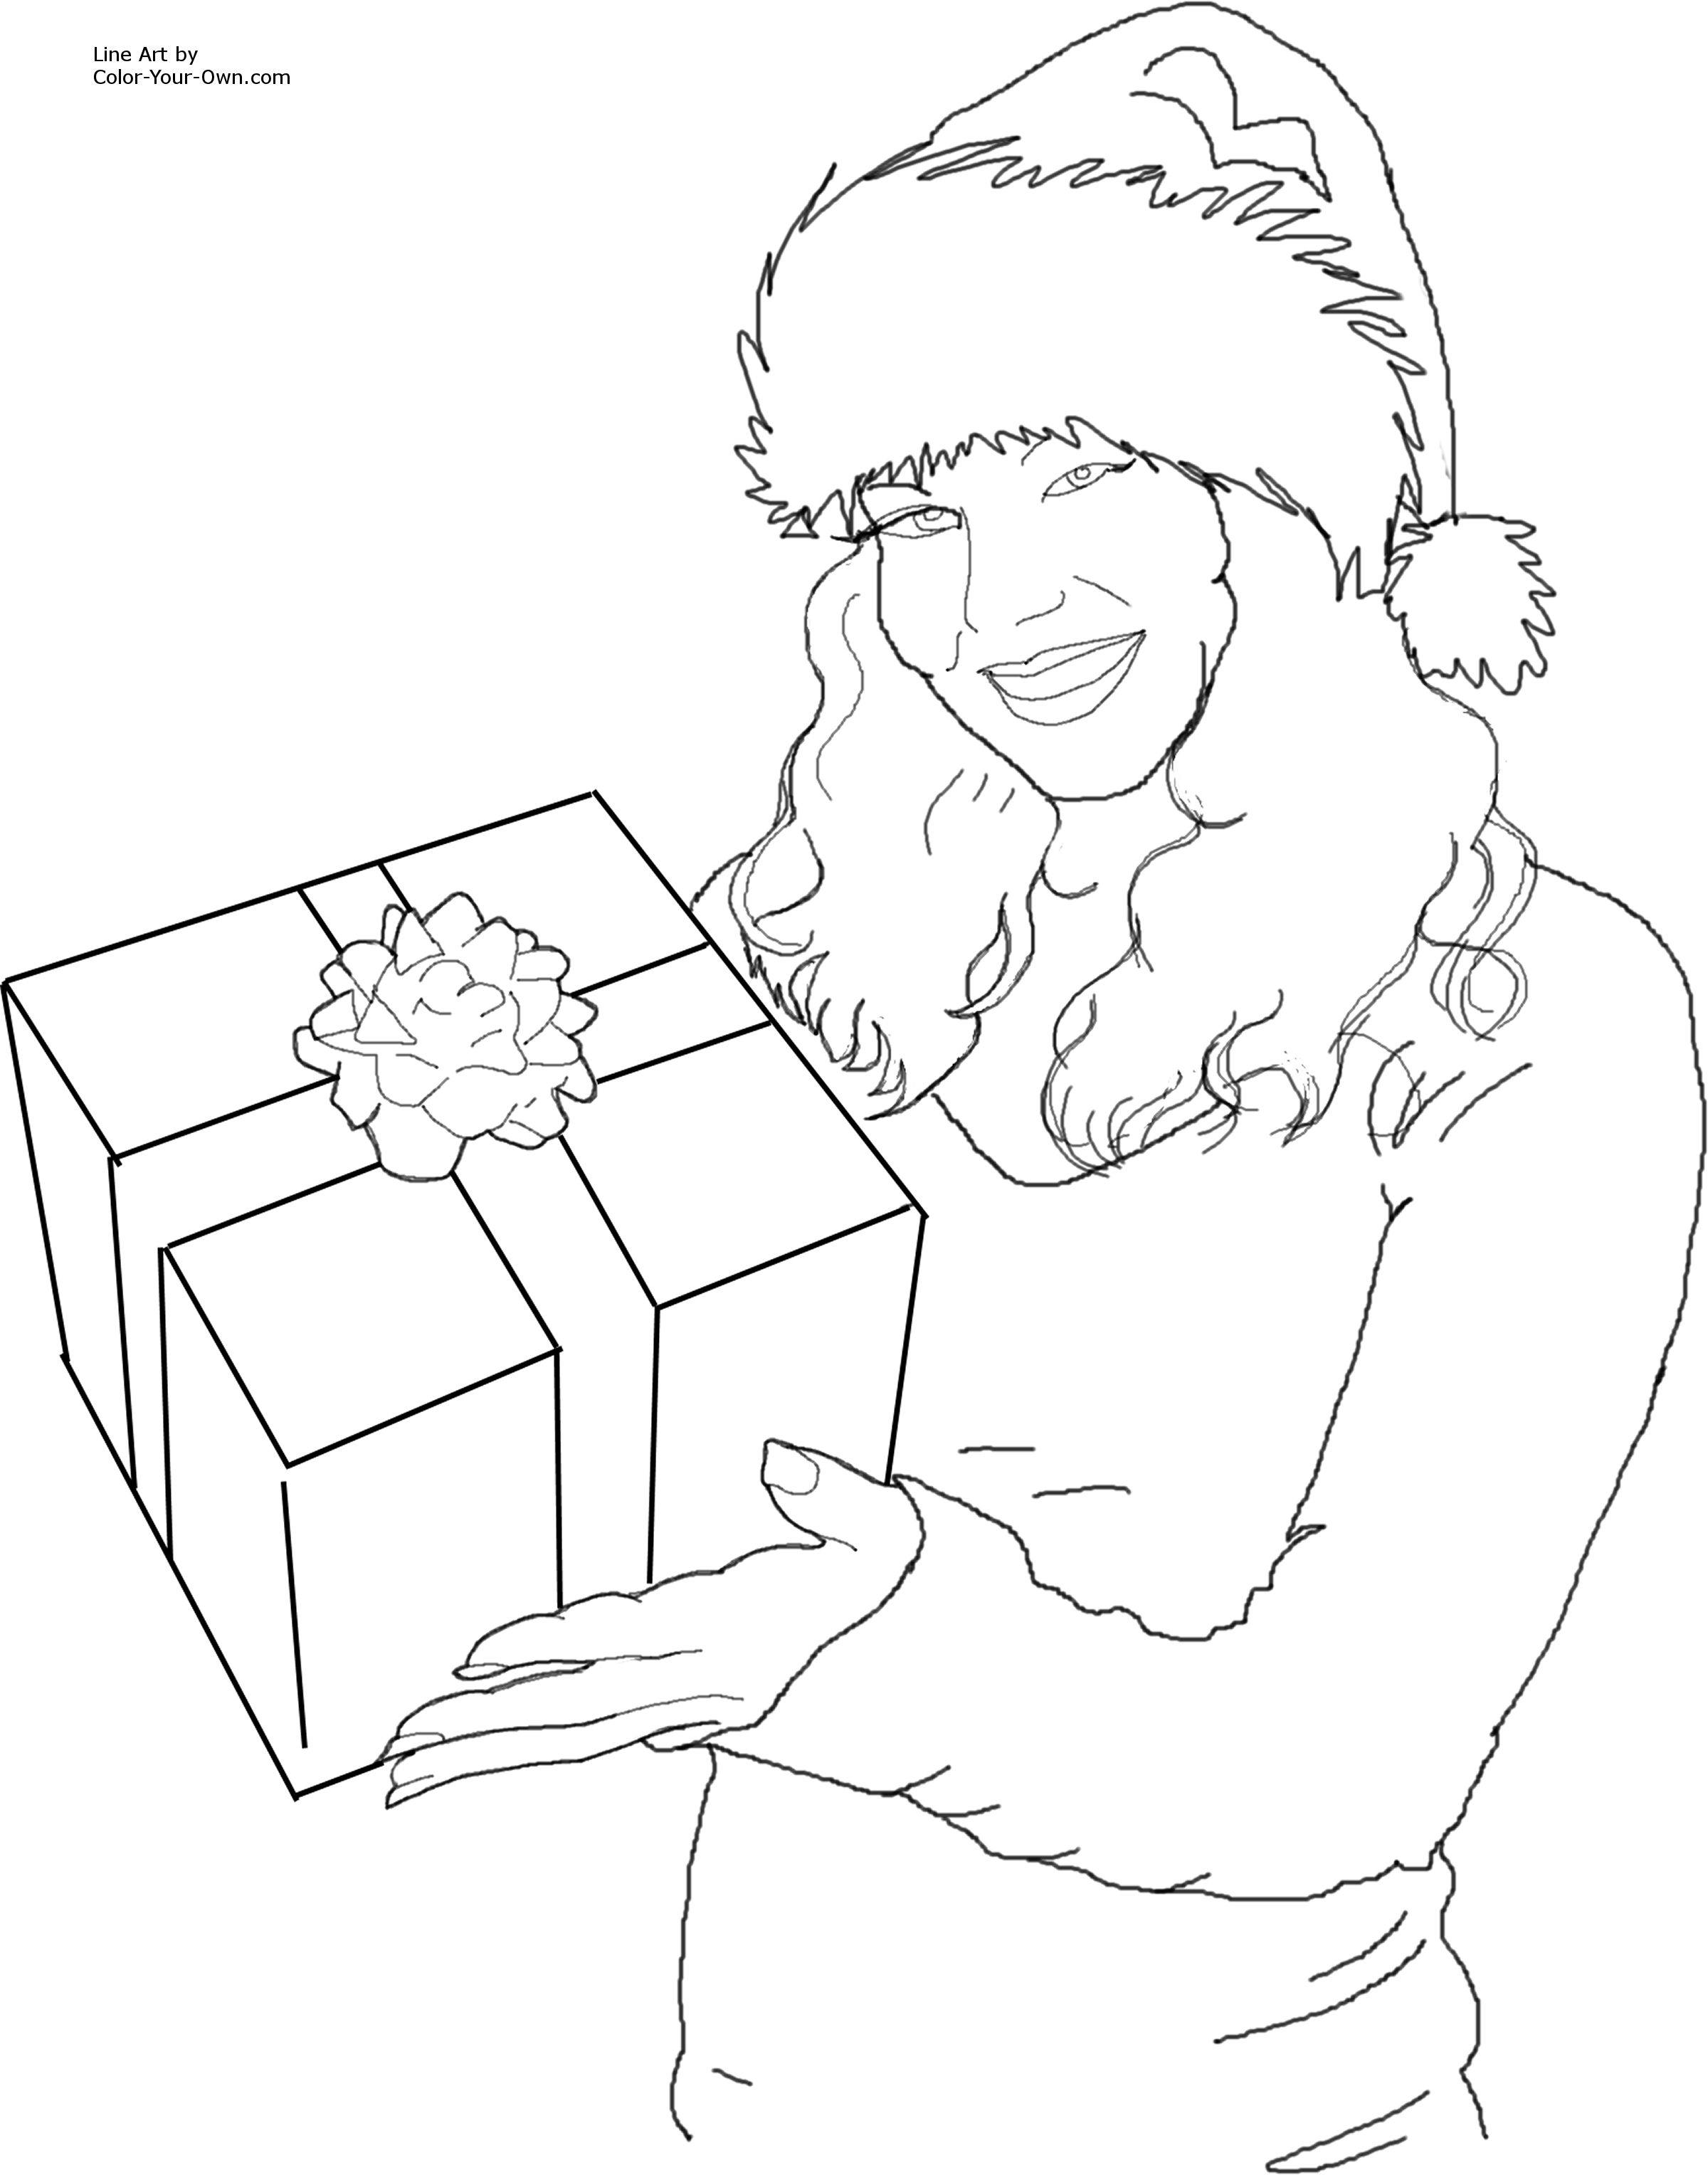 Silverado Drawing At Free For Personal Use 2006 Chevy Wiring Diagram 433x527 Parts Systematic Accordingly Famreit 2400x3056 Christmas Santas Helper With A Gift Coloring Page